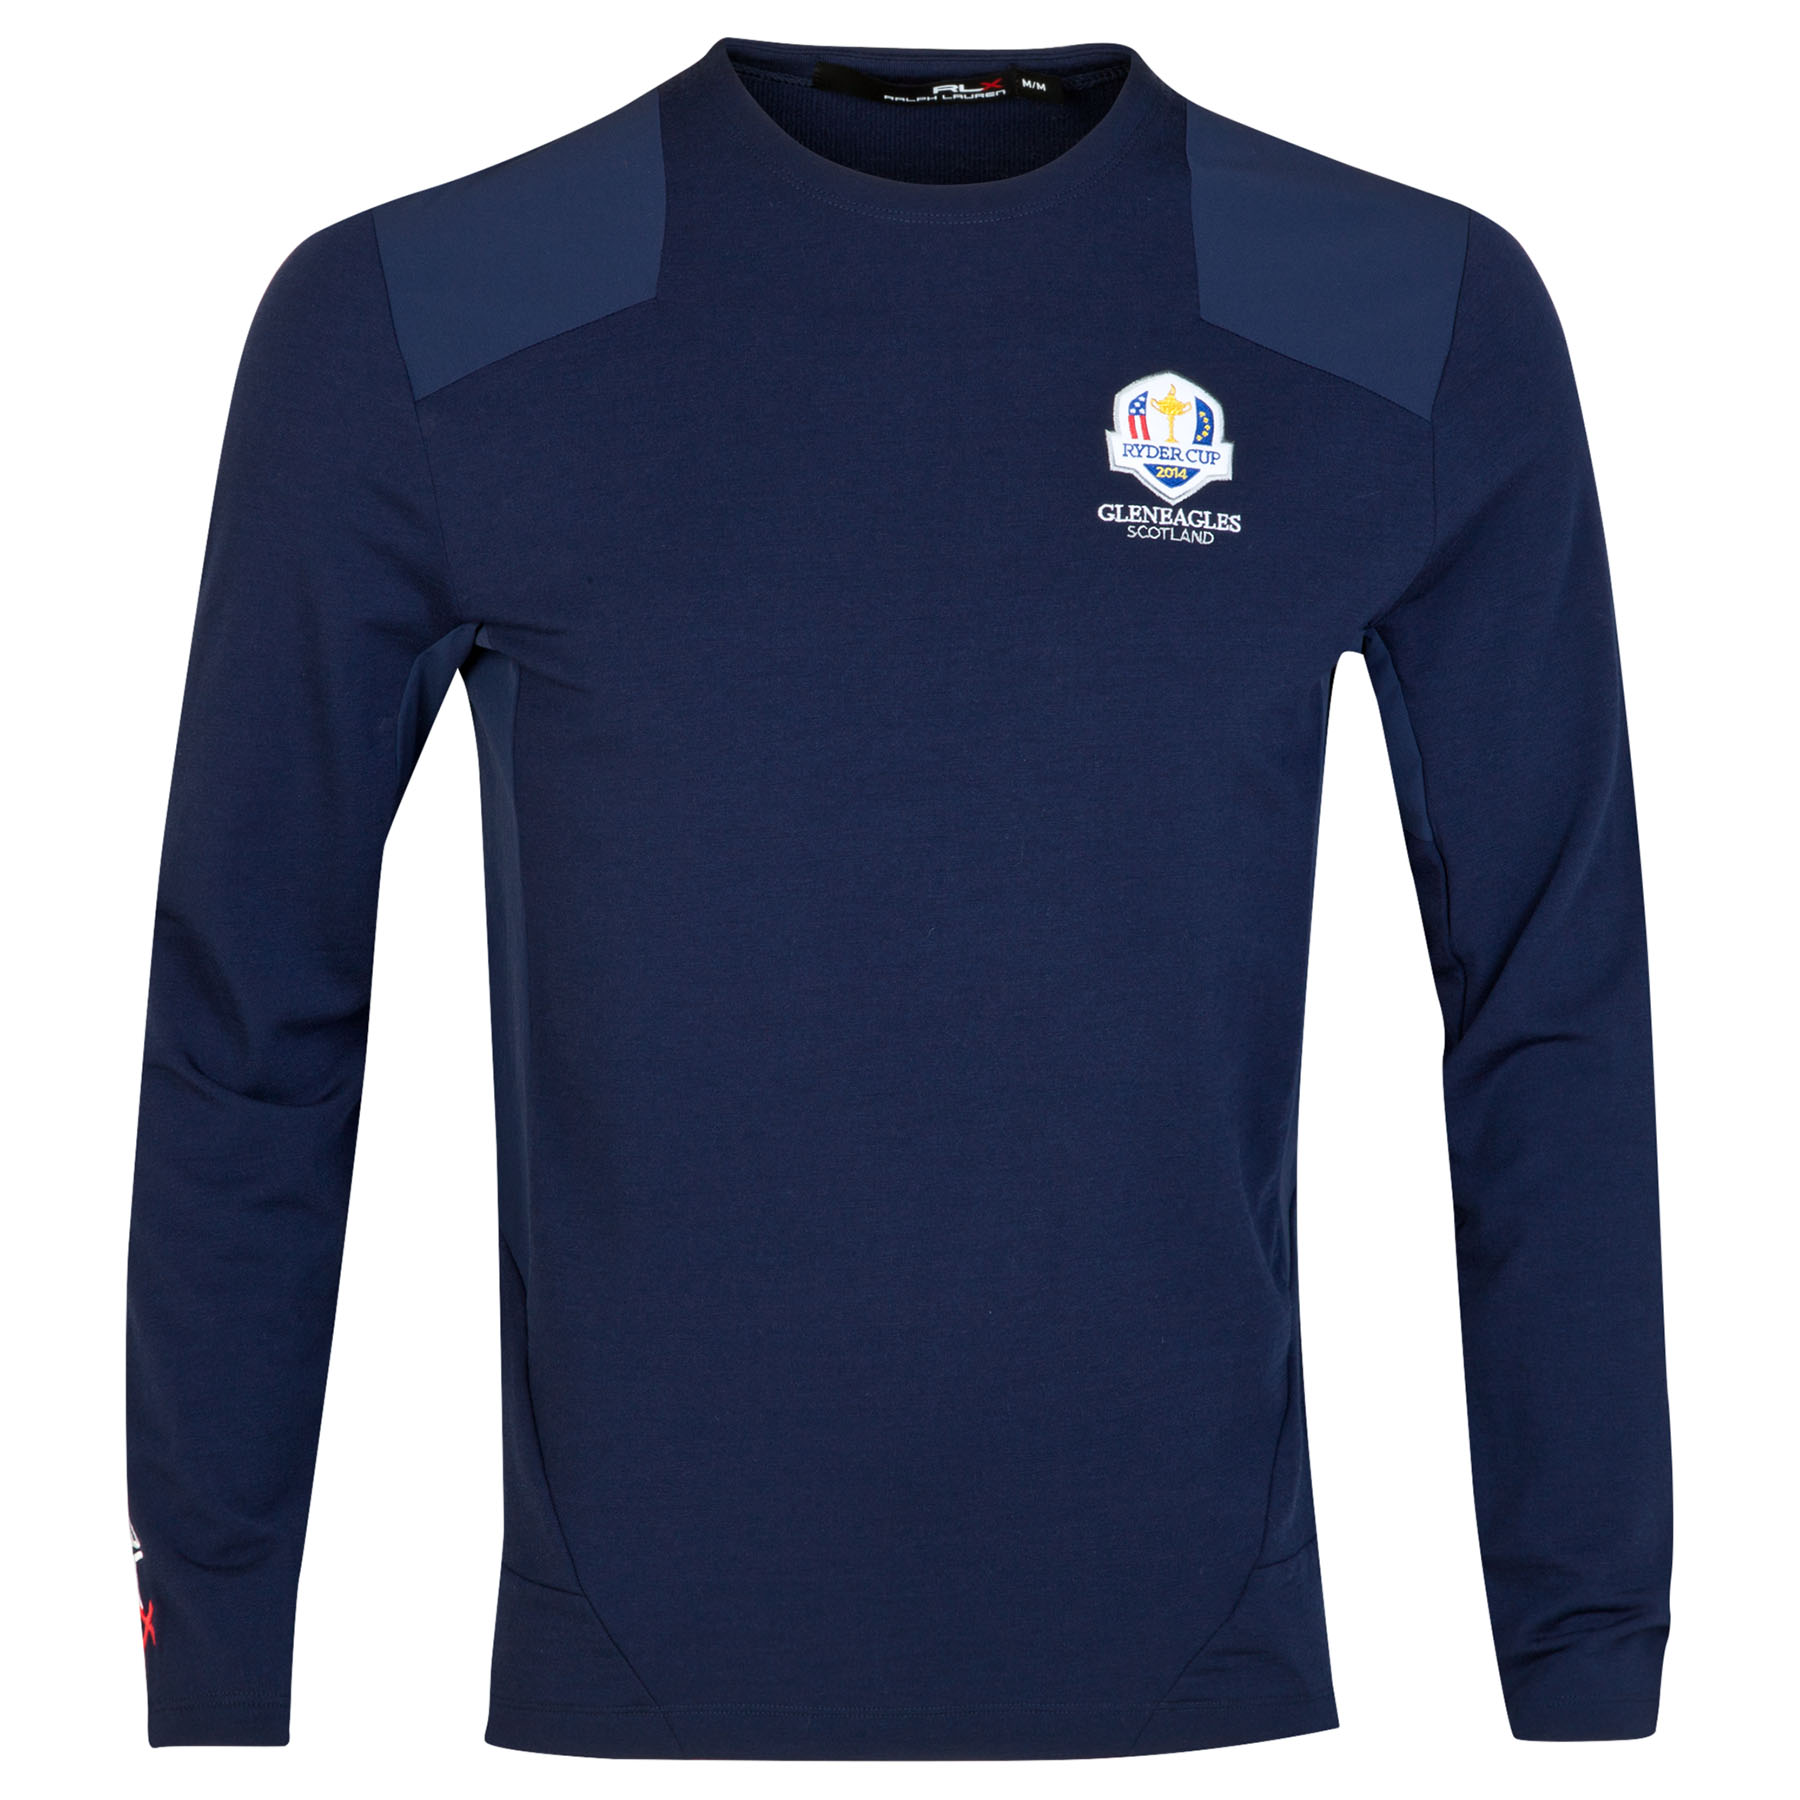 The 2014 Ryder Cup Ralph Lauren Cool Wool & Nylon - French Navy